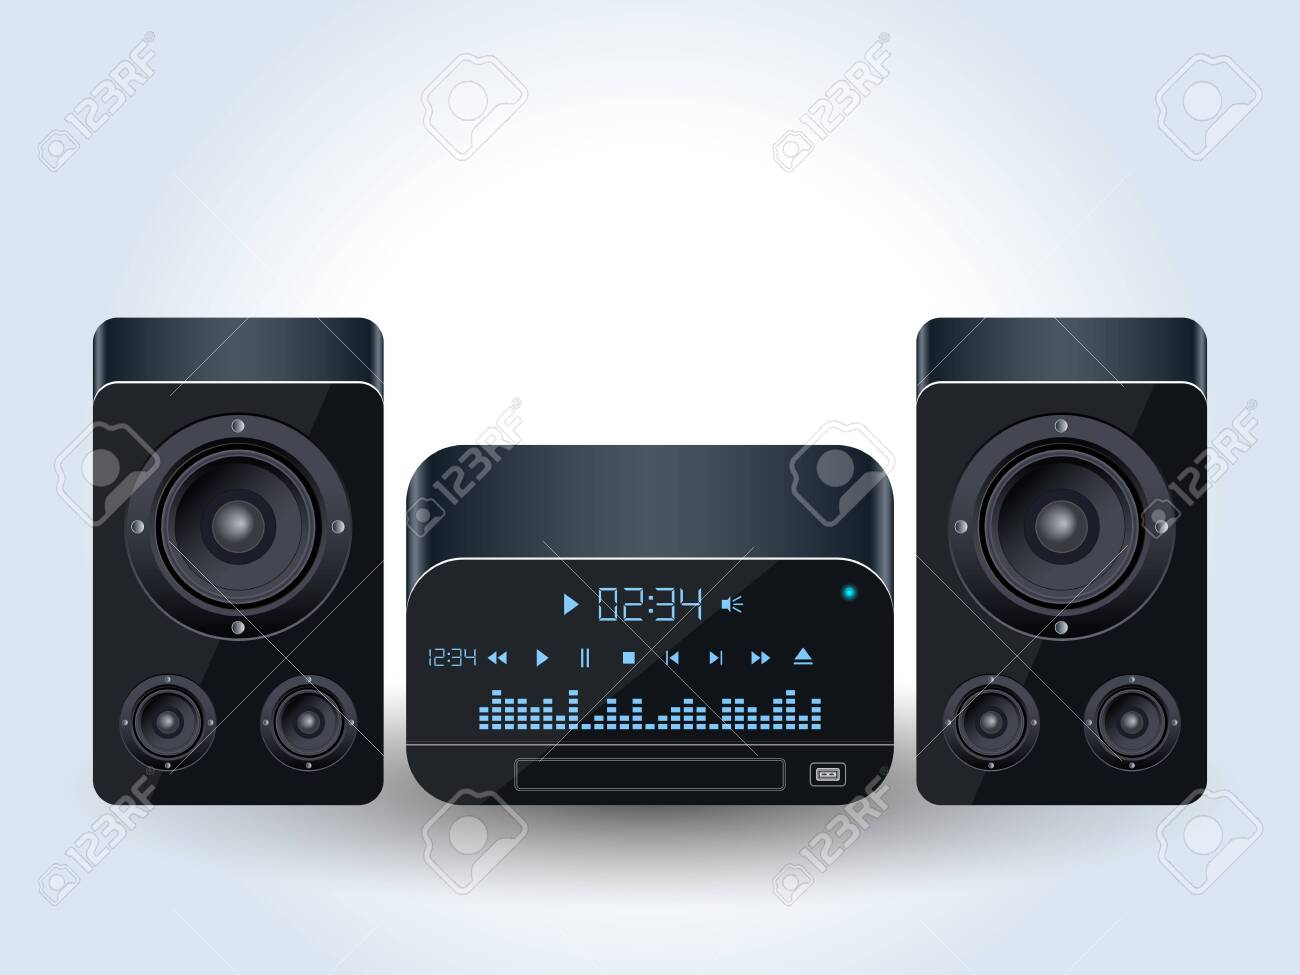 Home audio system realistic vector illustration - 122701754